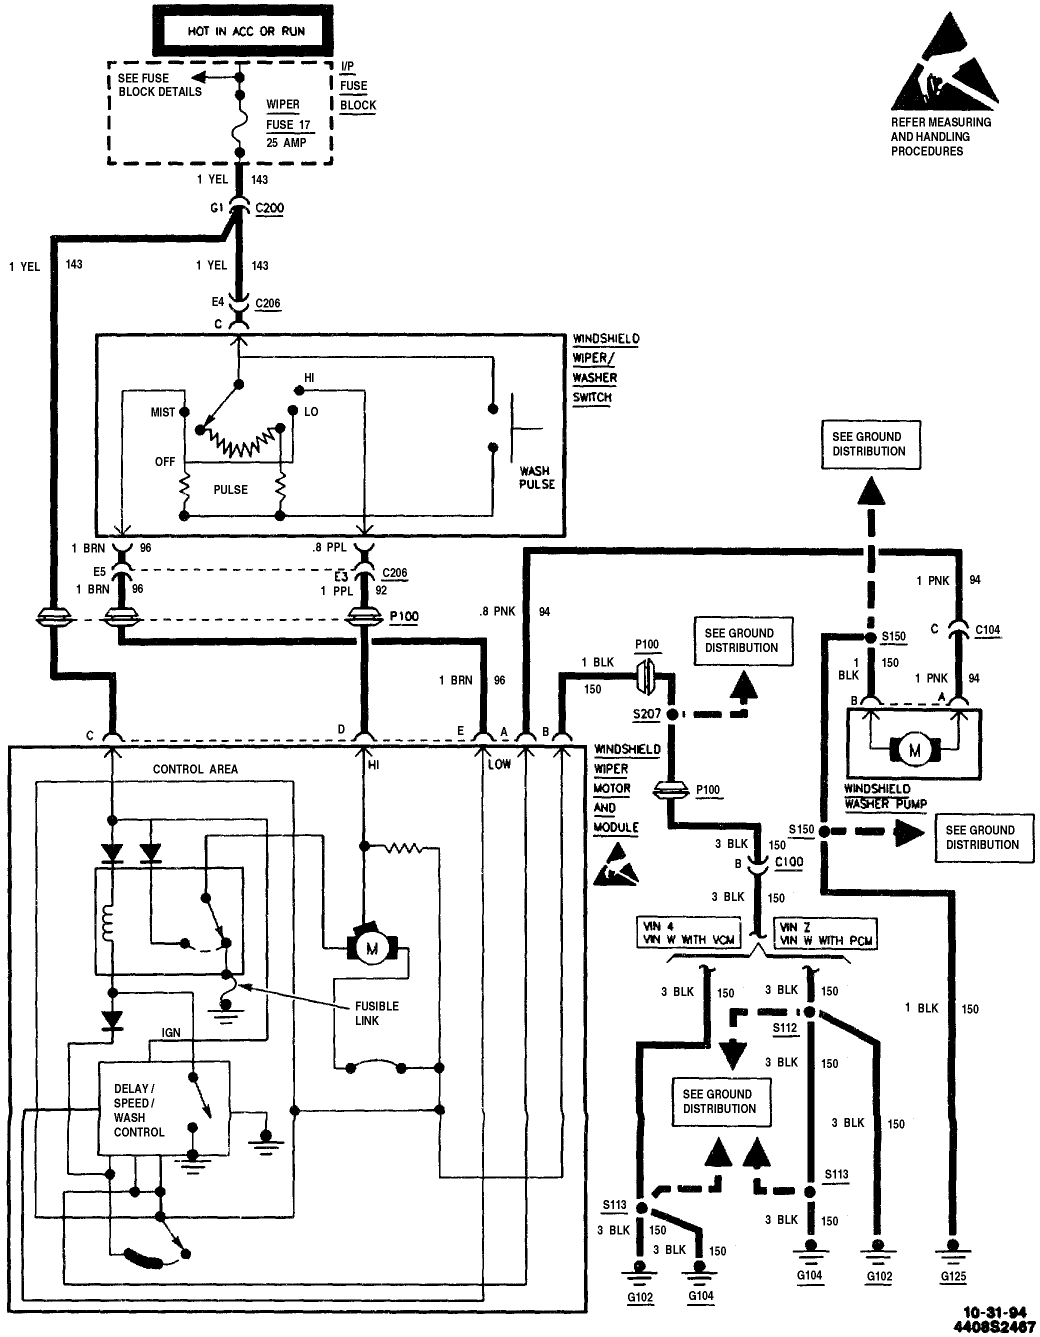 wiper motor wiring diagram i need to know the schematic or power mirror  switch wiring diagram